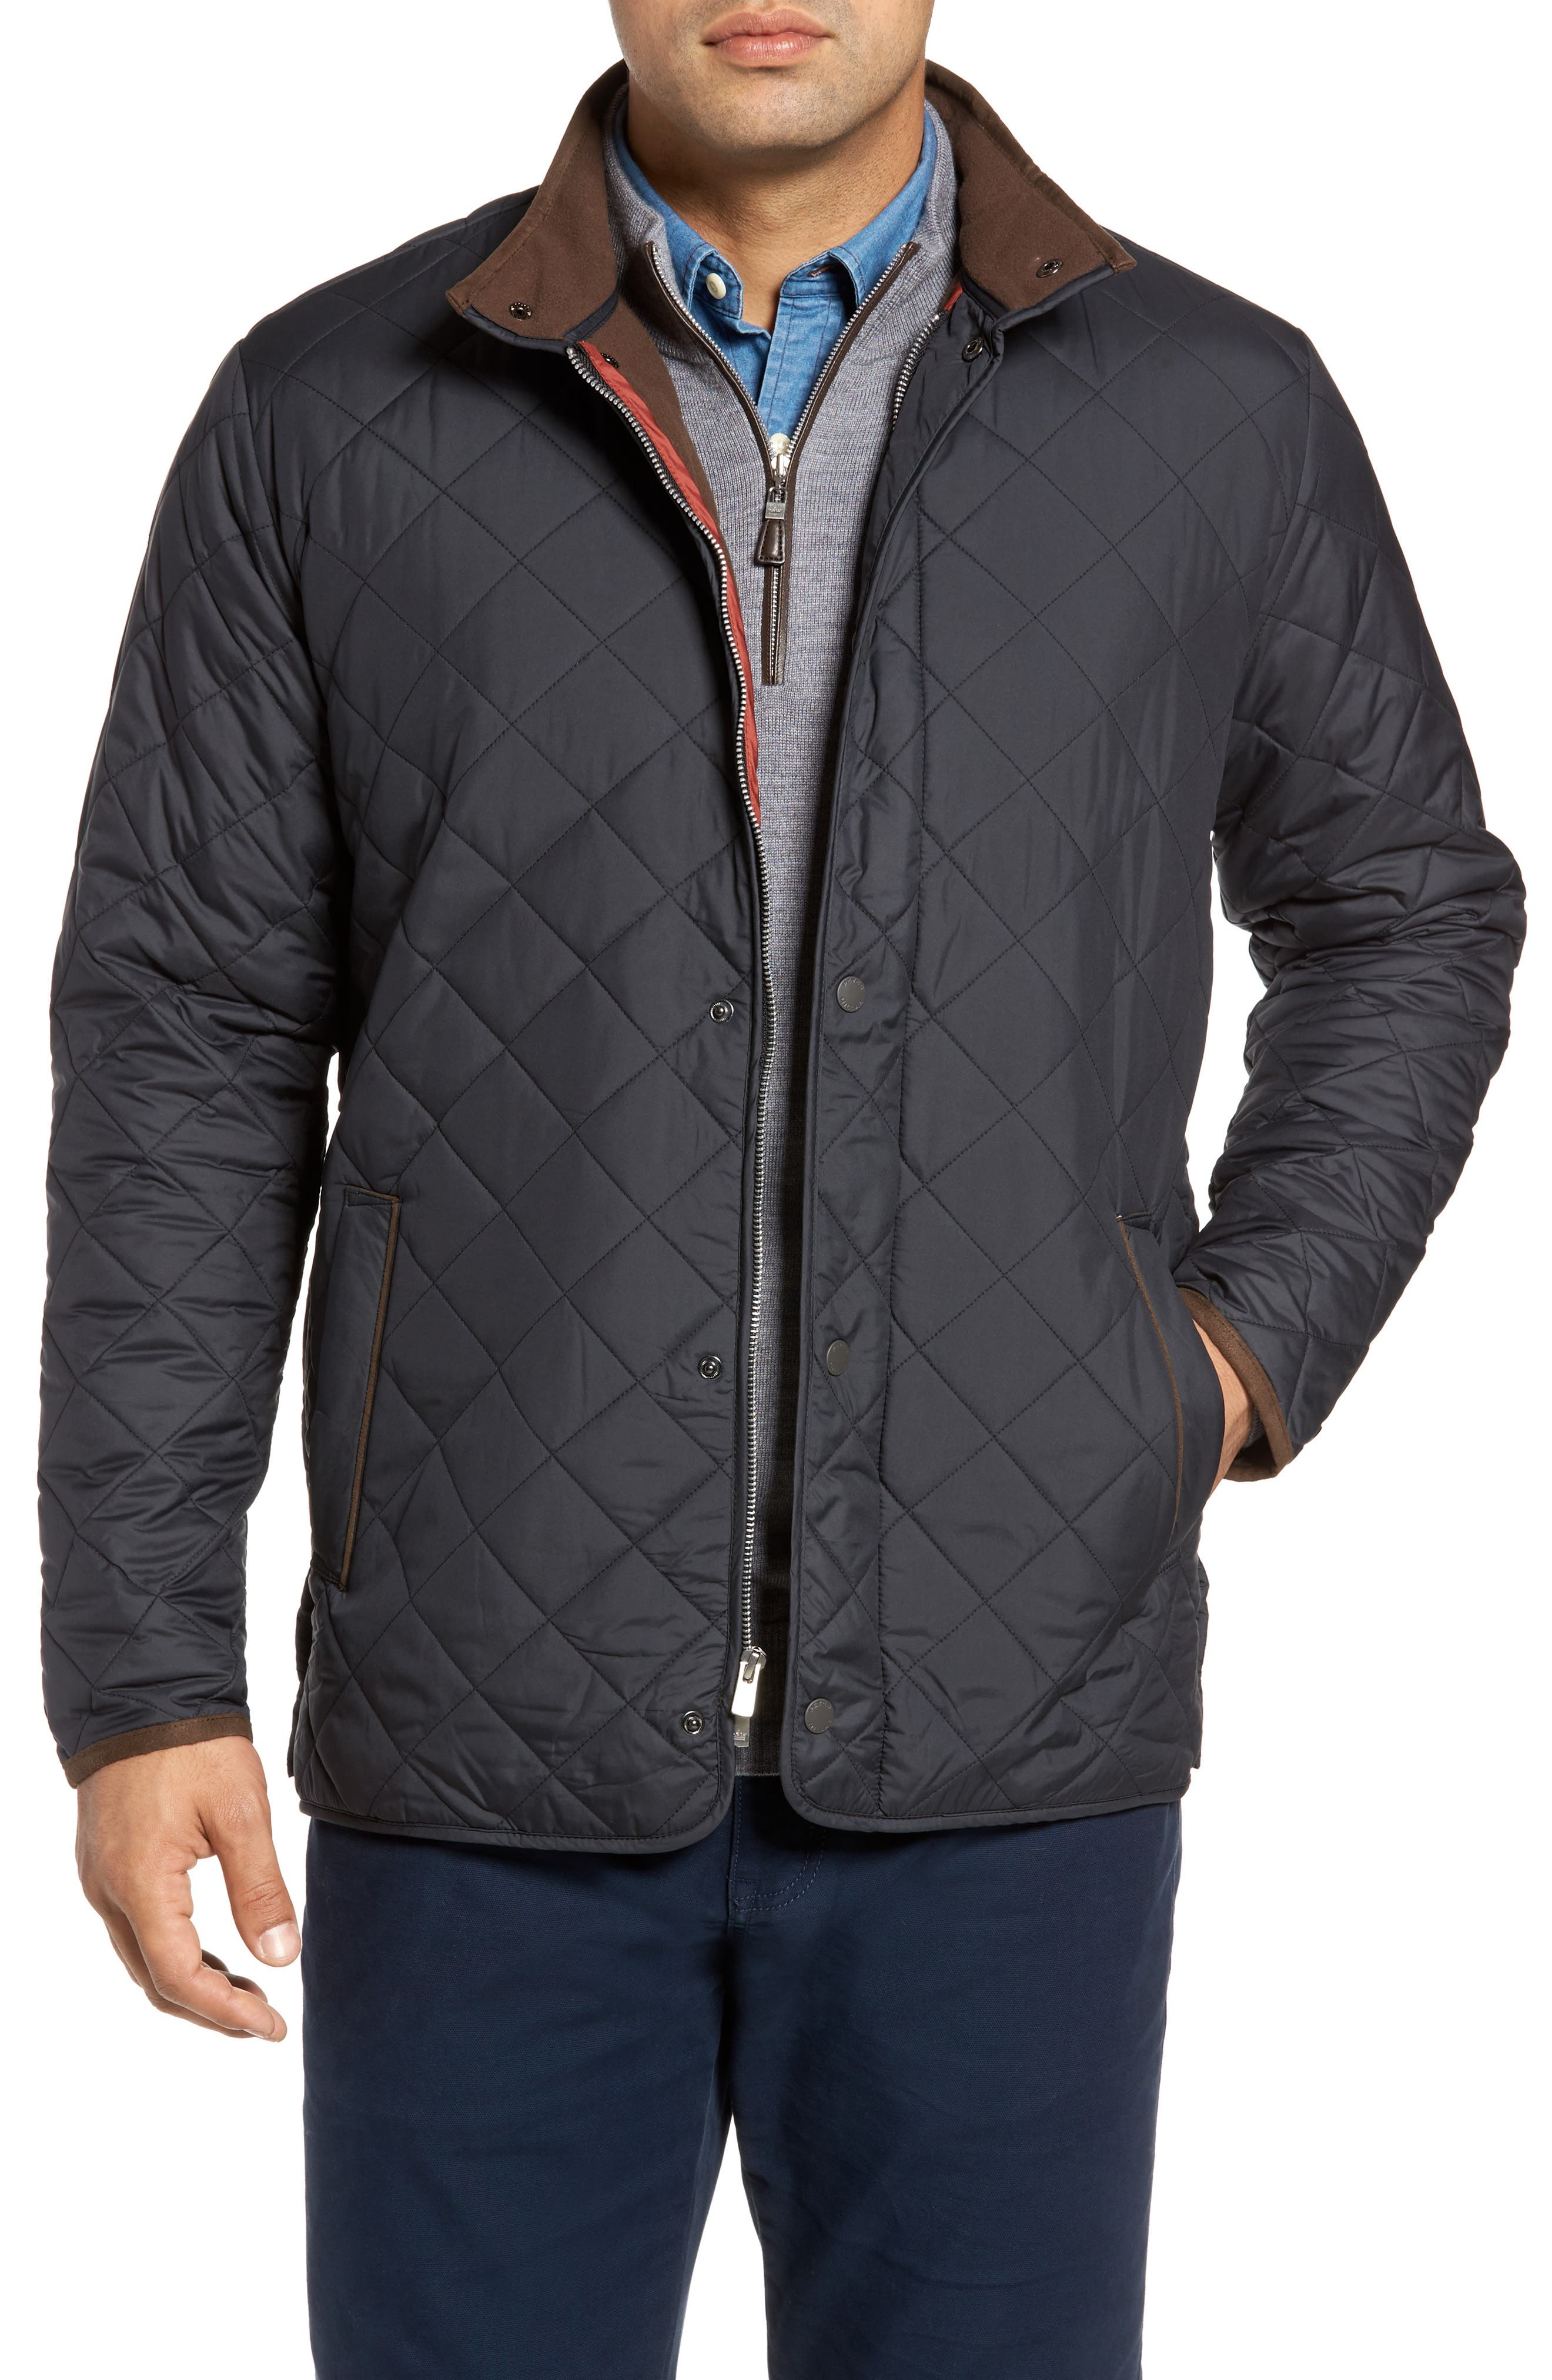 Suffolk Quilted Water-Resistant Car Coat,                             Main thumbnail 1, color,                             001